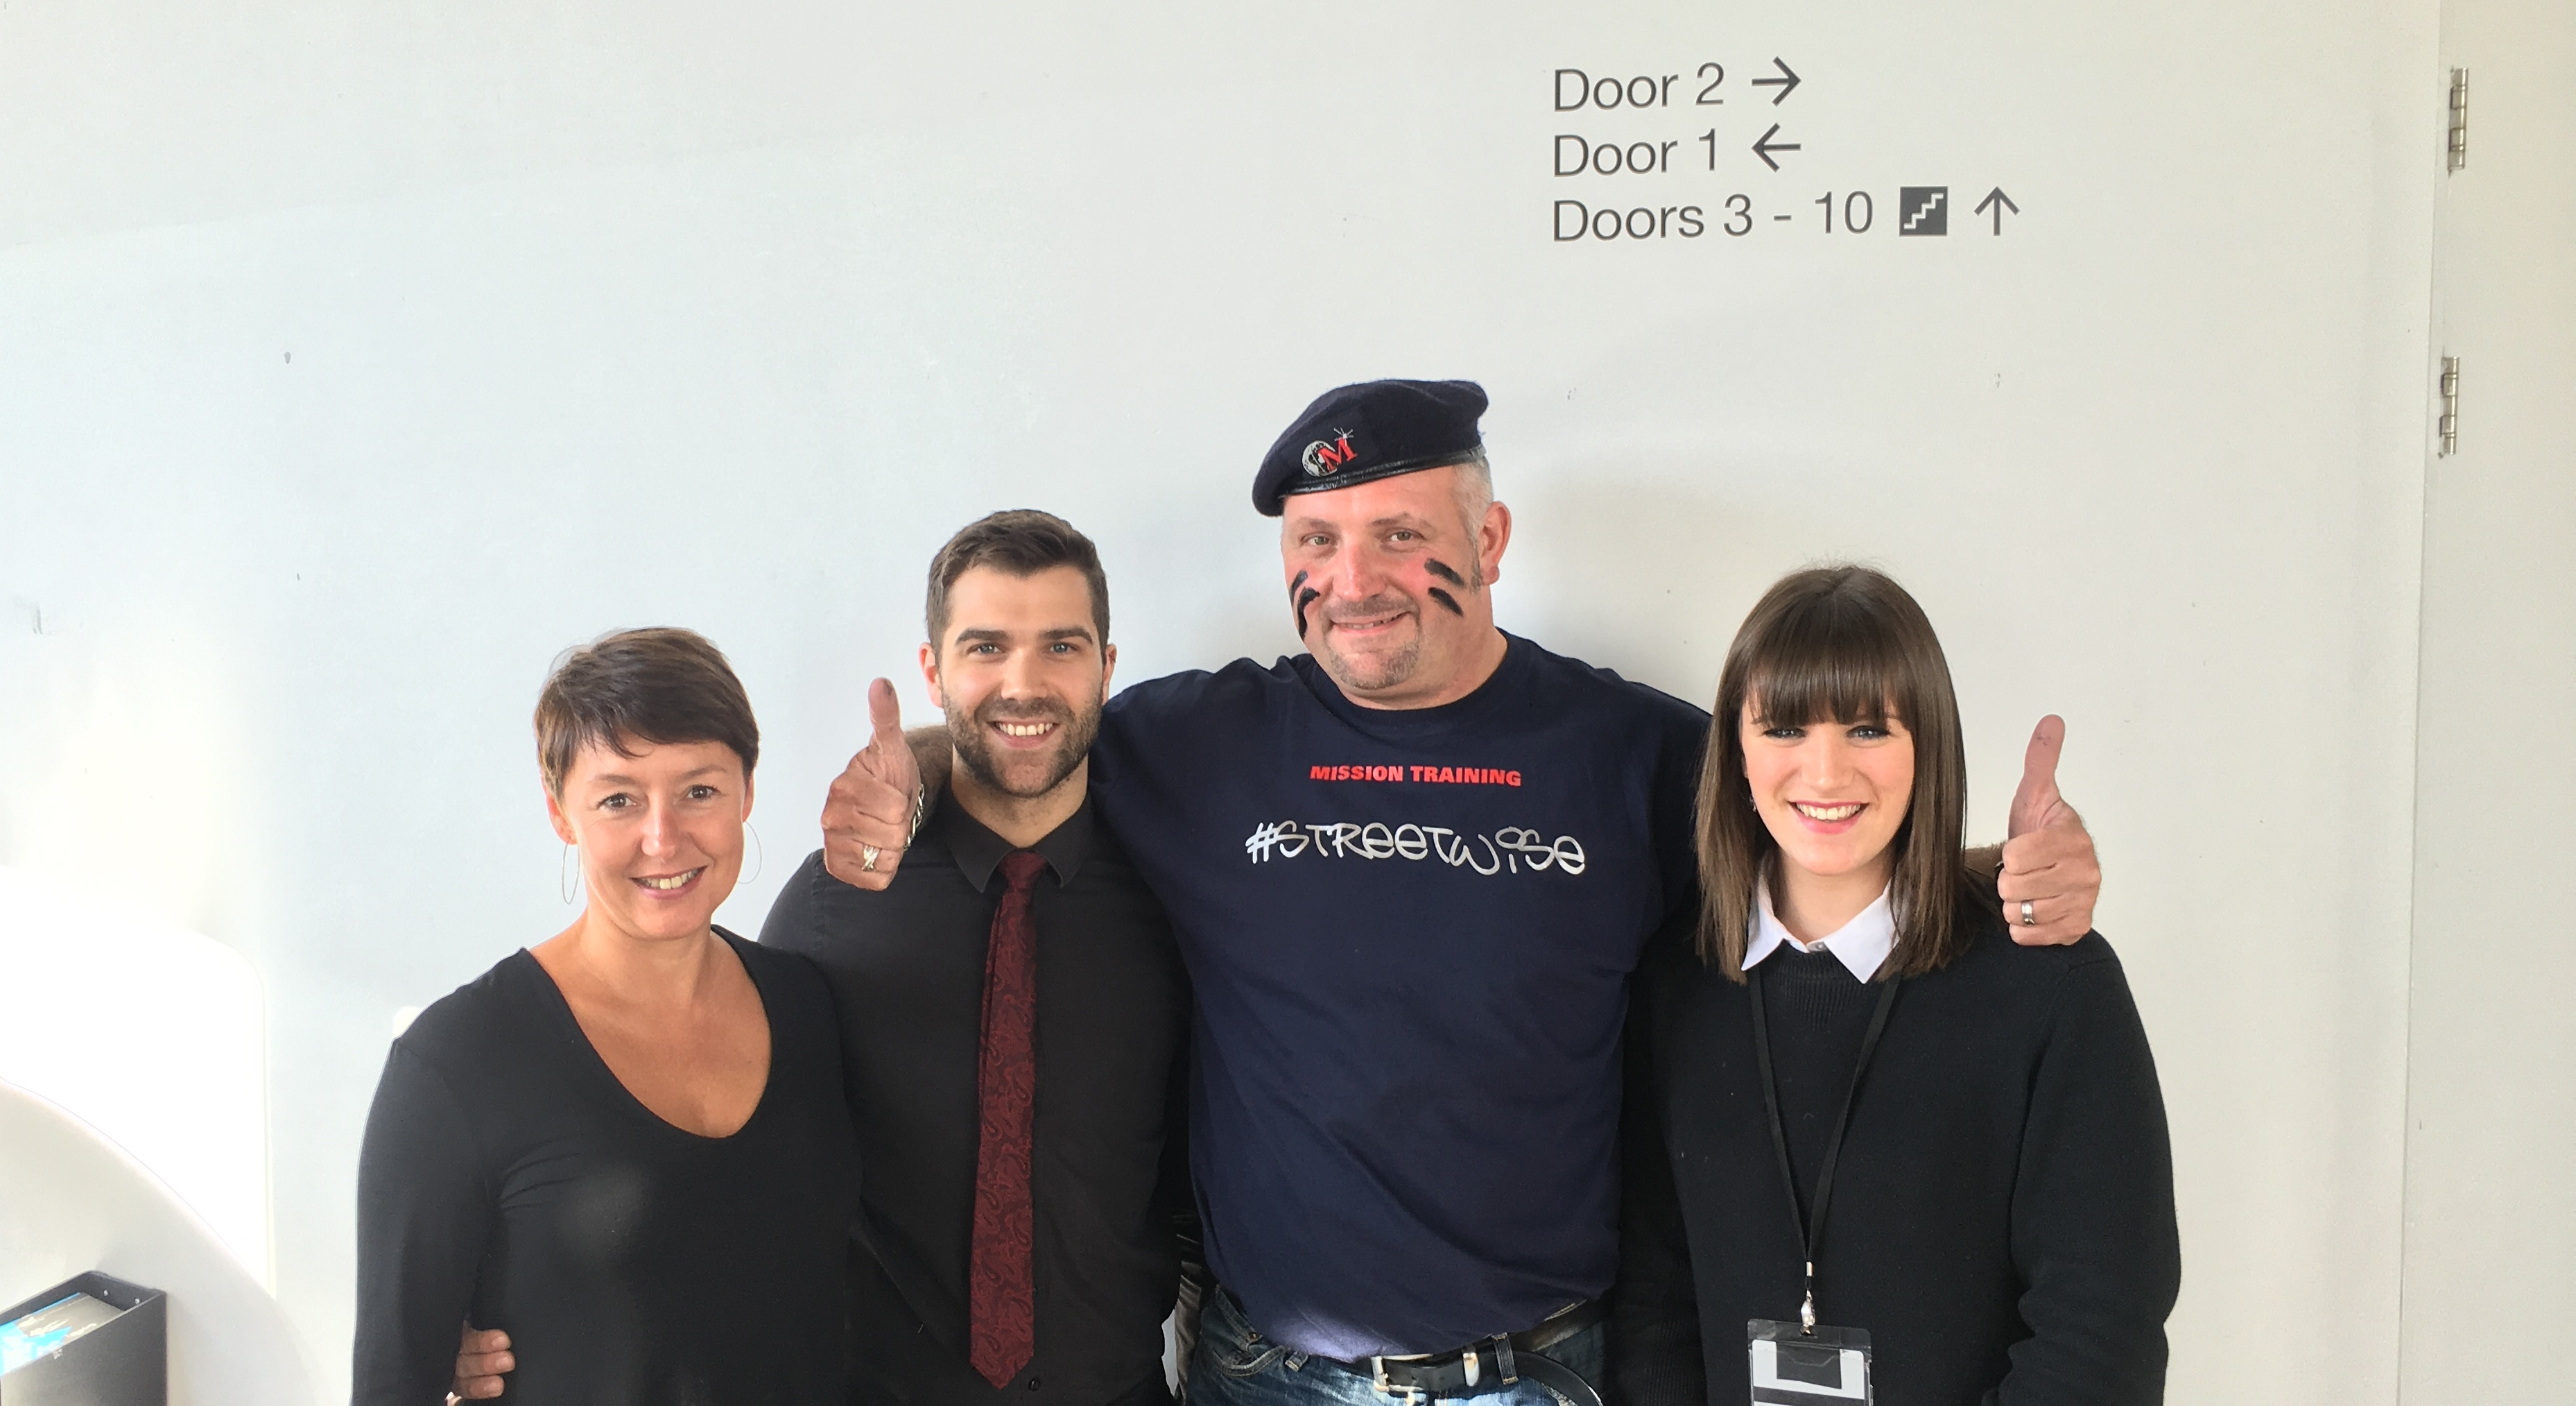 September 2016 - Maximus visited the team at The Marlowe Theatre